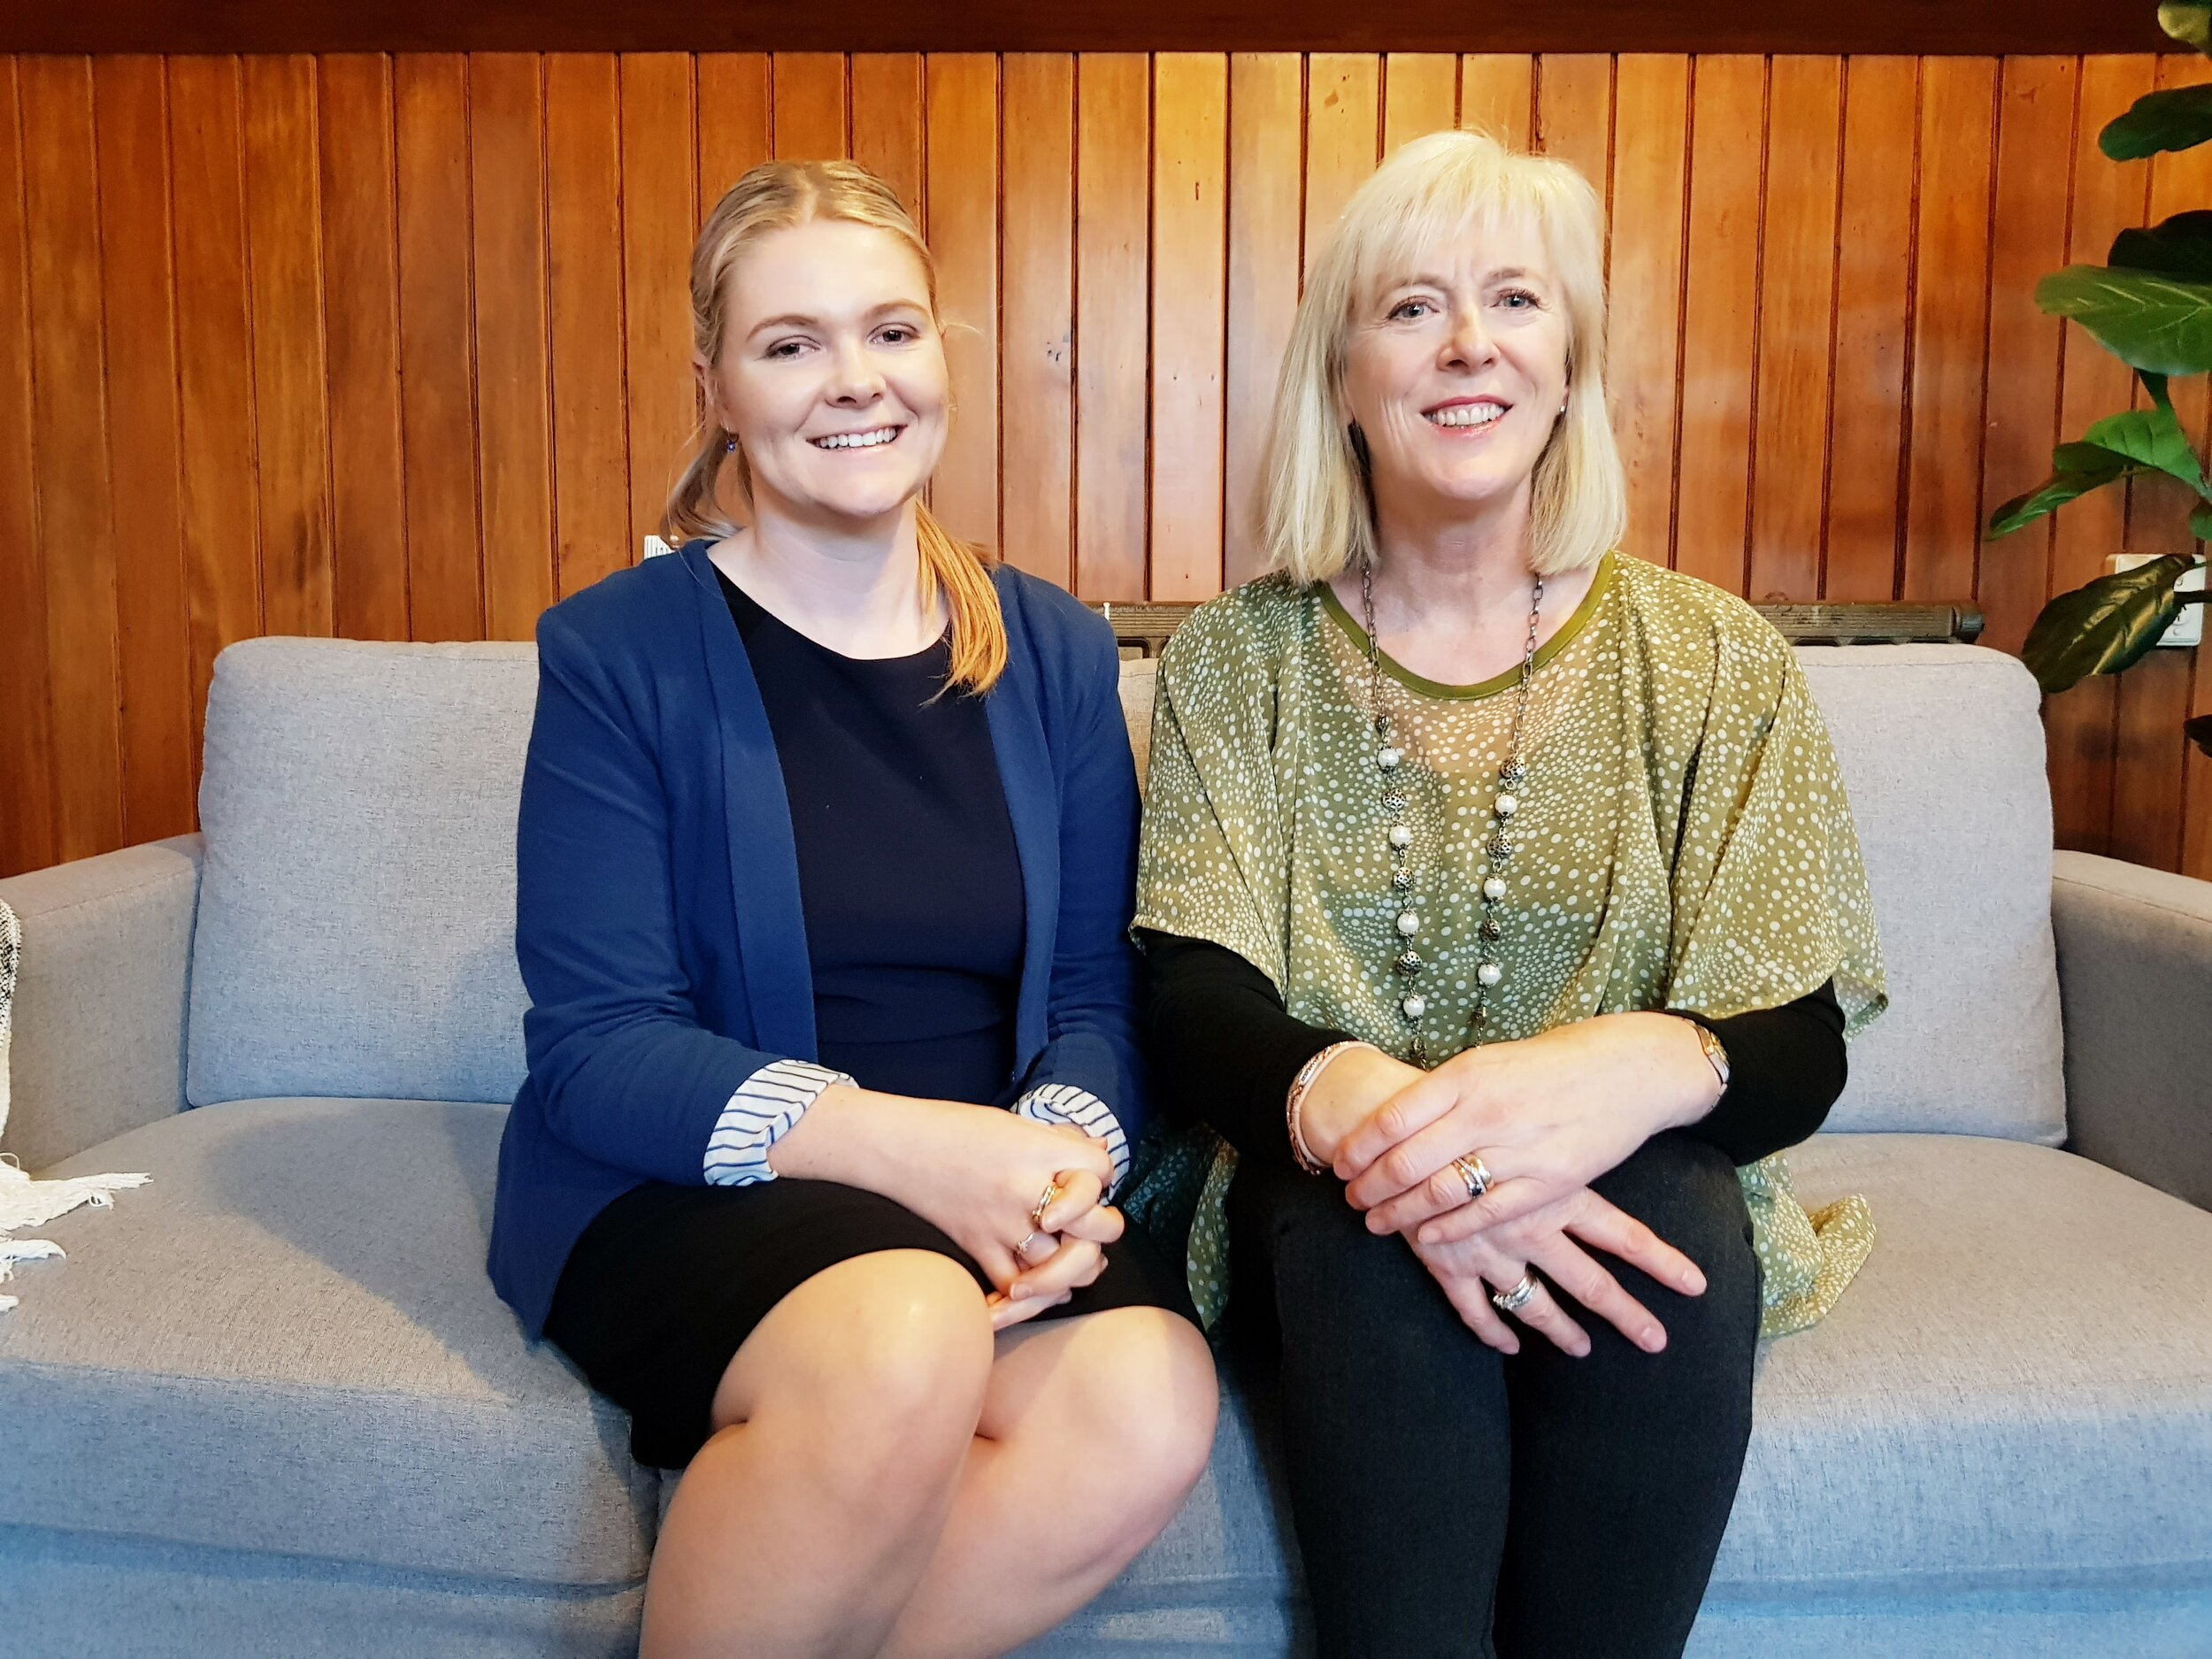 Charlotte muggeridge & lucy lloyd-barker - 2019 world ywca board nominees for aotearoa new zealand